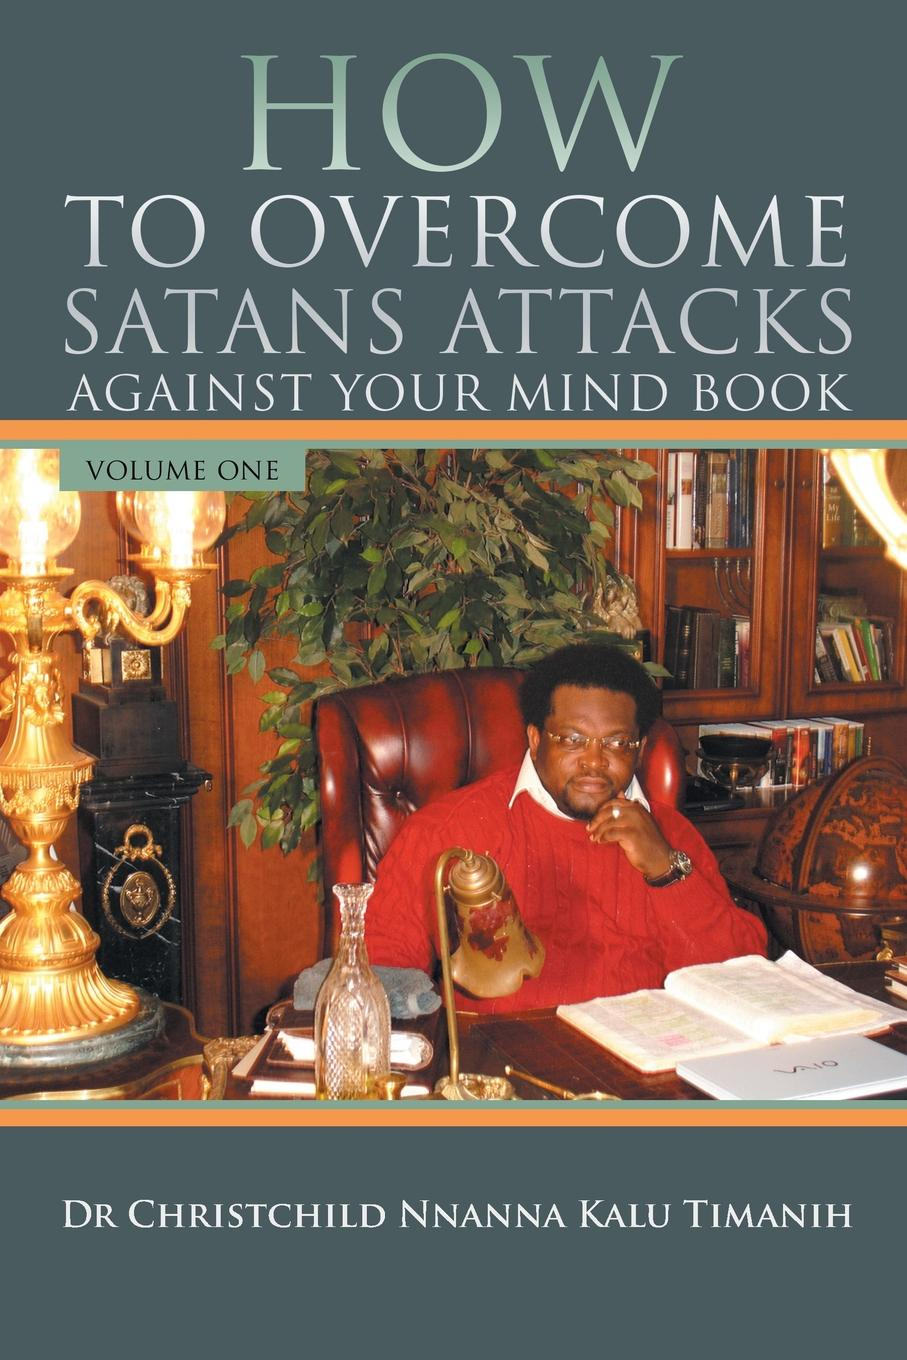 Kalu Timanih HOW TO OVERCOME SATANS ATTACKS AGAINST YOUR MIND BOOK VOLUME ONE how to free your mind